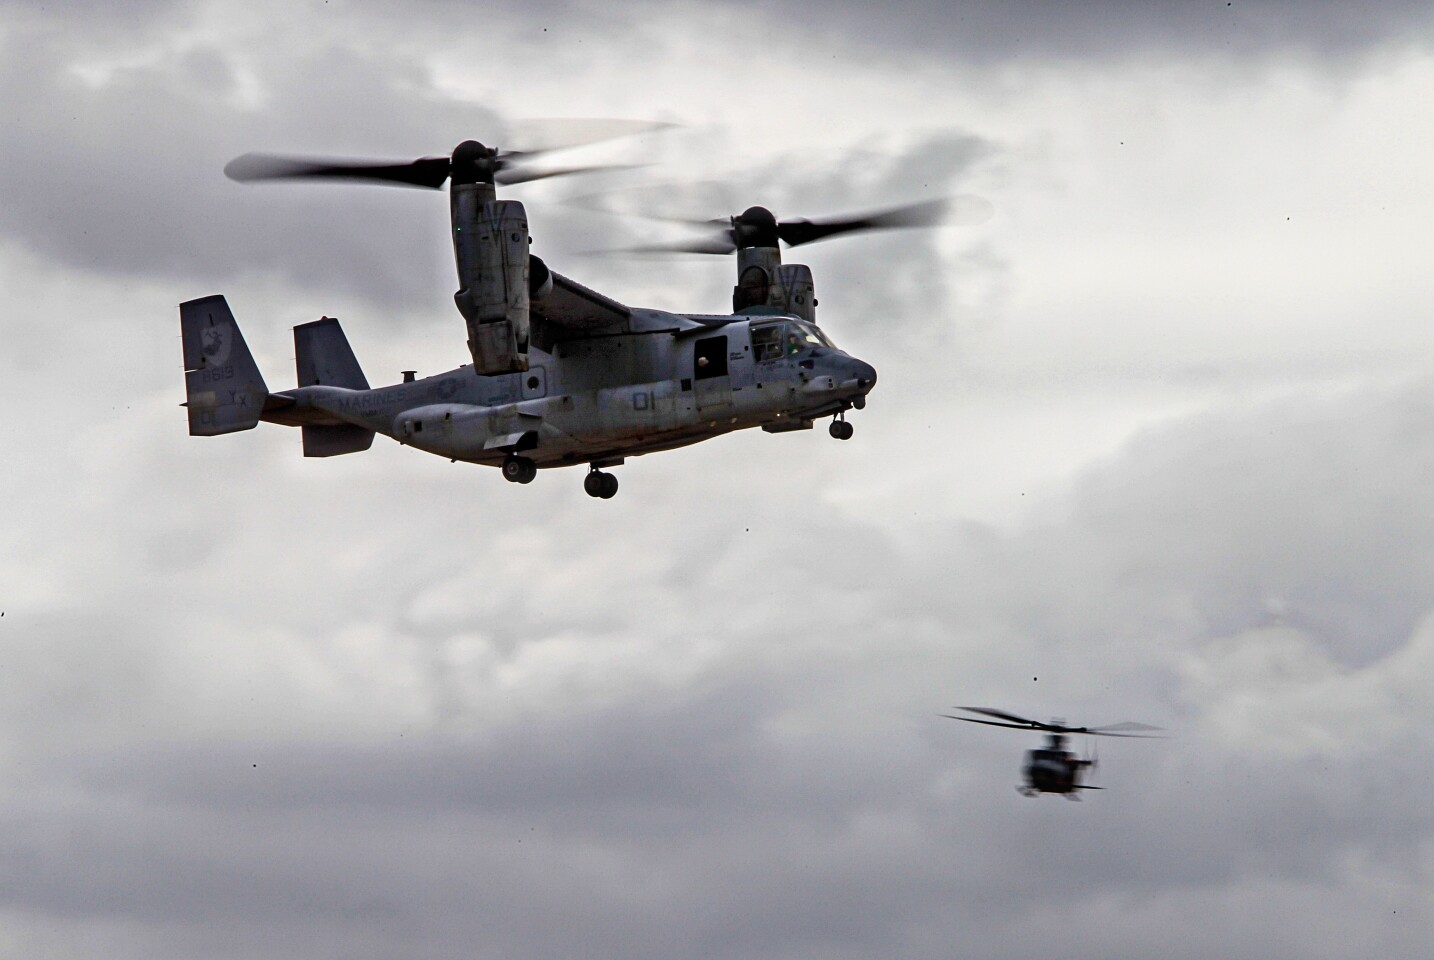 A Marine Corps Osprey MV-22 flies during preview day for the MCAS Miramar Airshow on September 26, 2019 in San Diego, California.